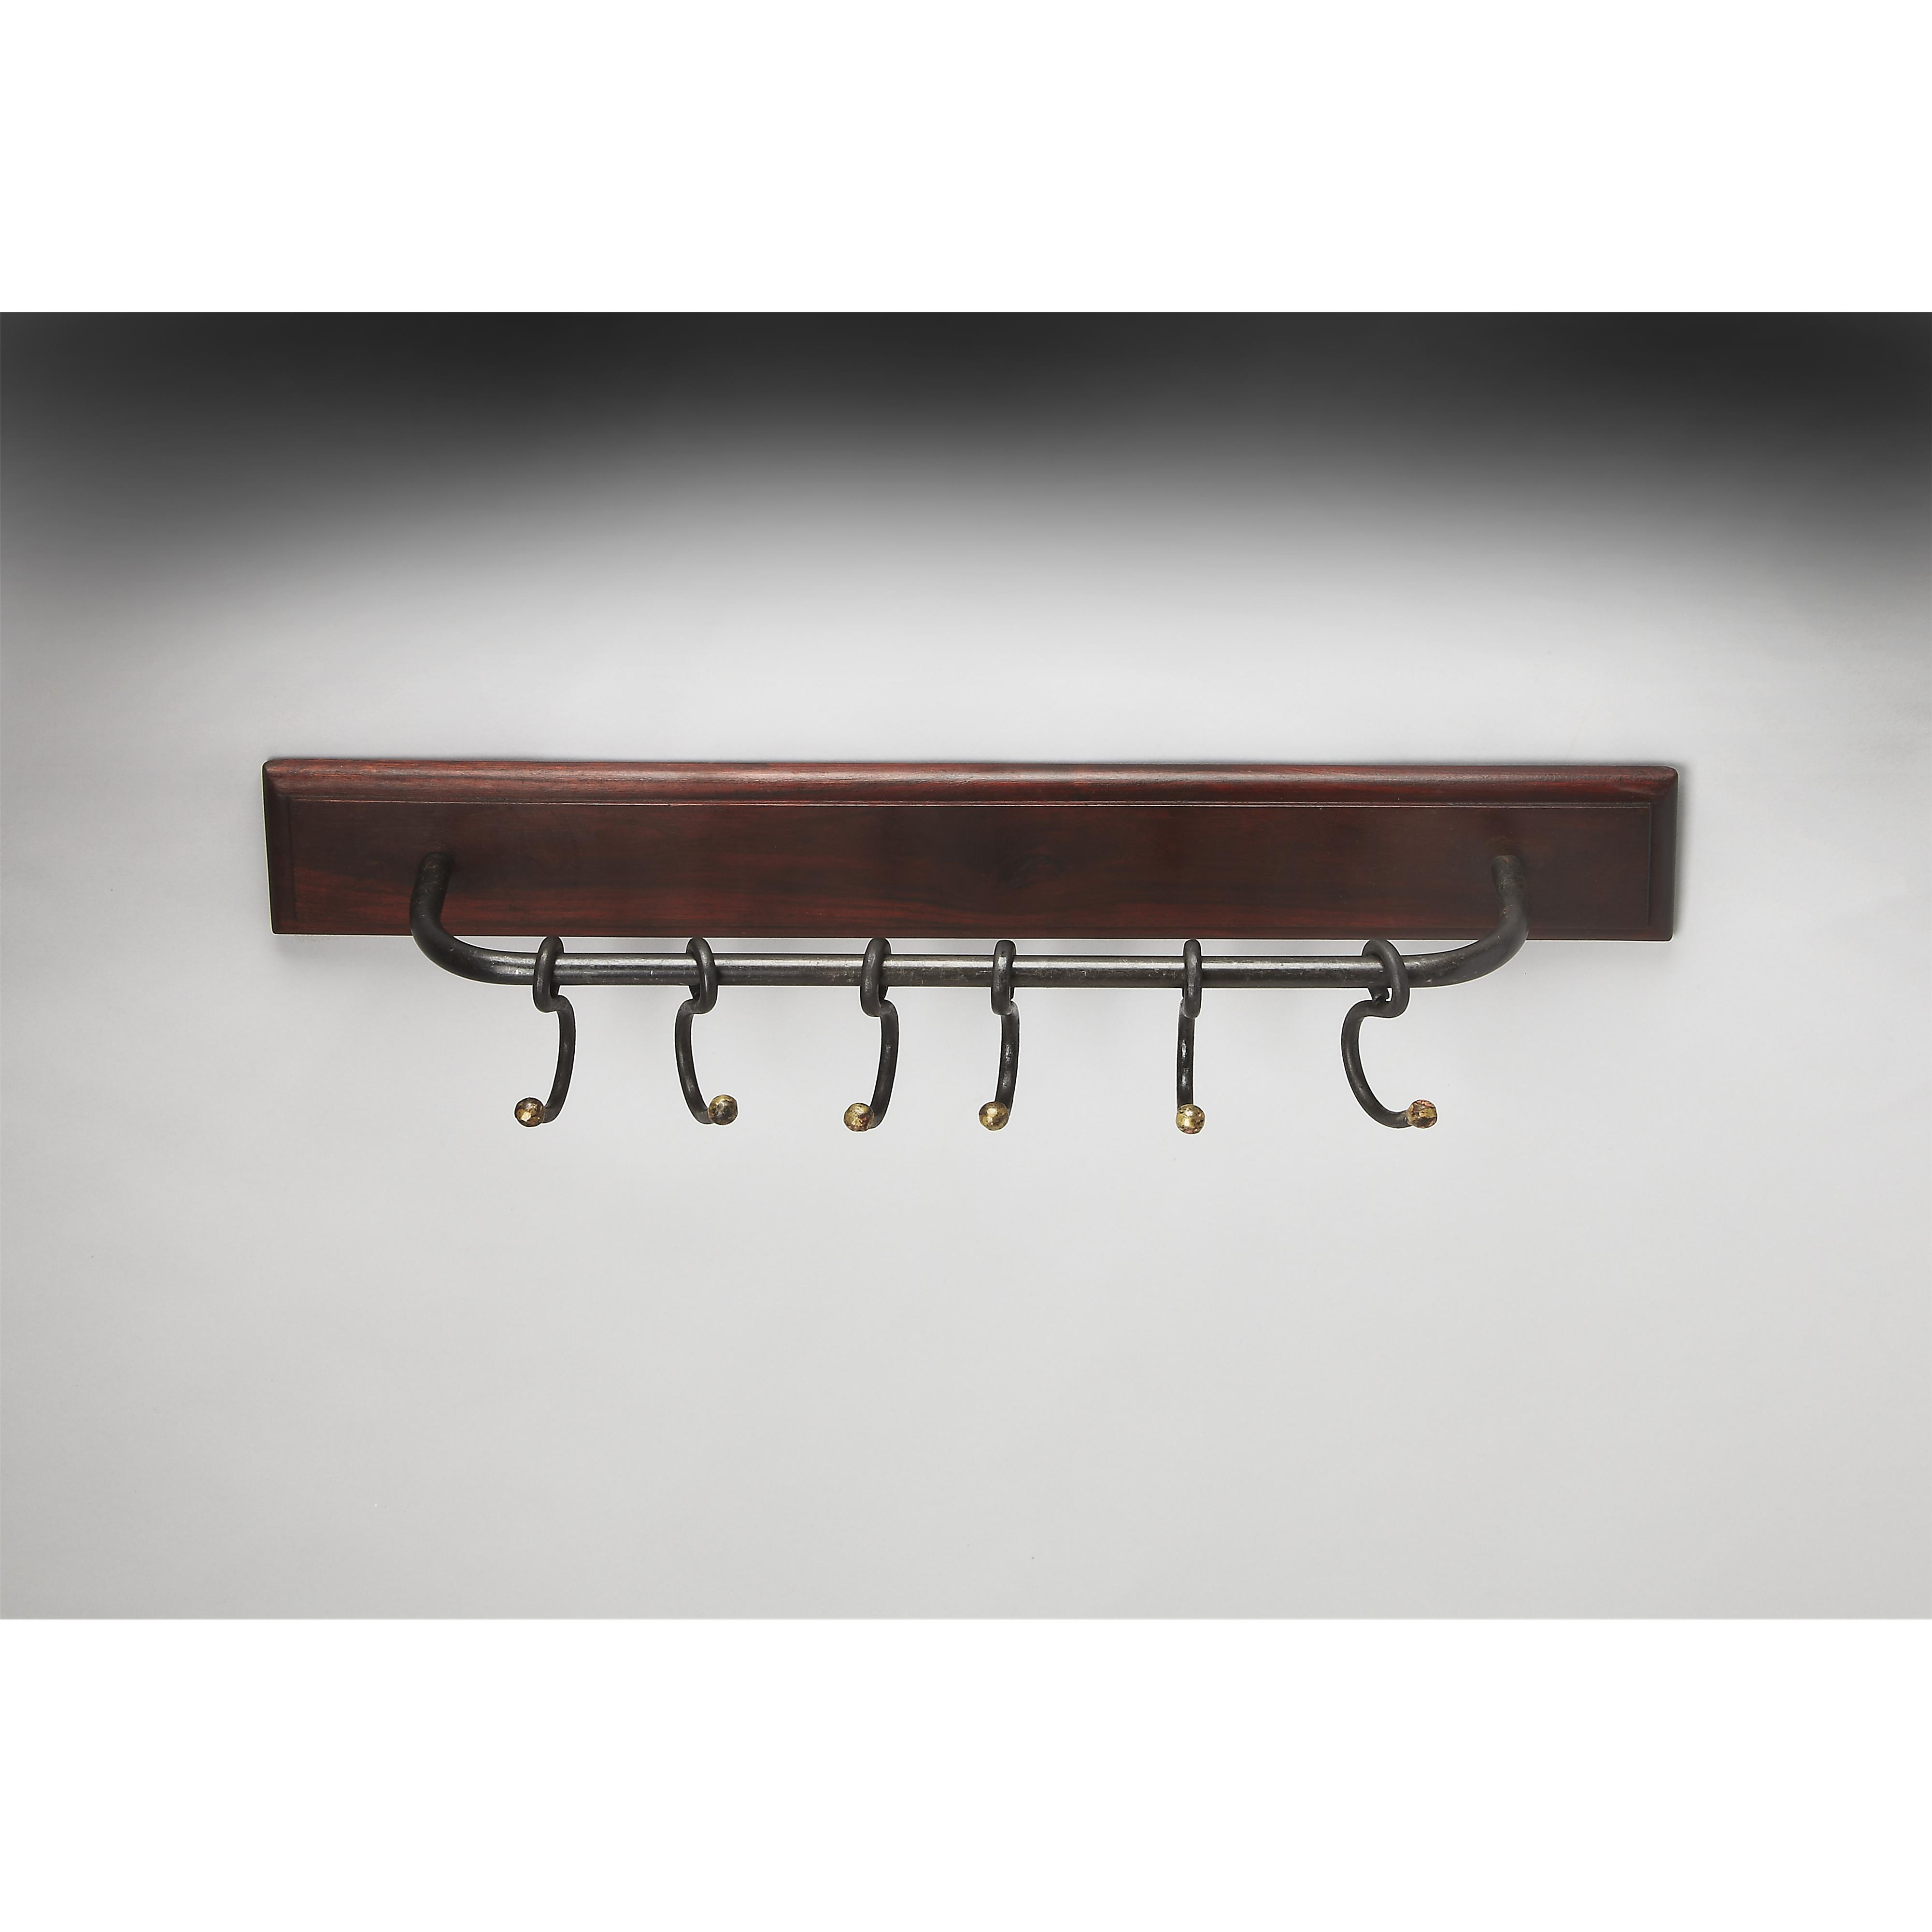 Hors D'oeuvres Wall Rack by Butler Specialty Company at Mueller Furniture